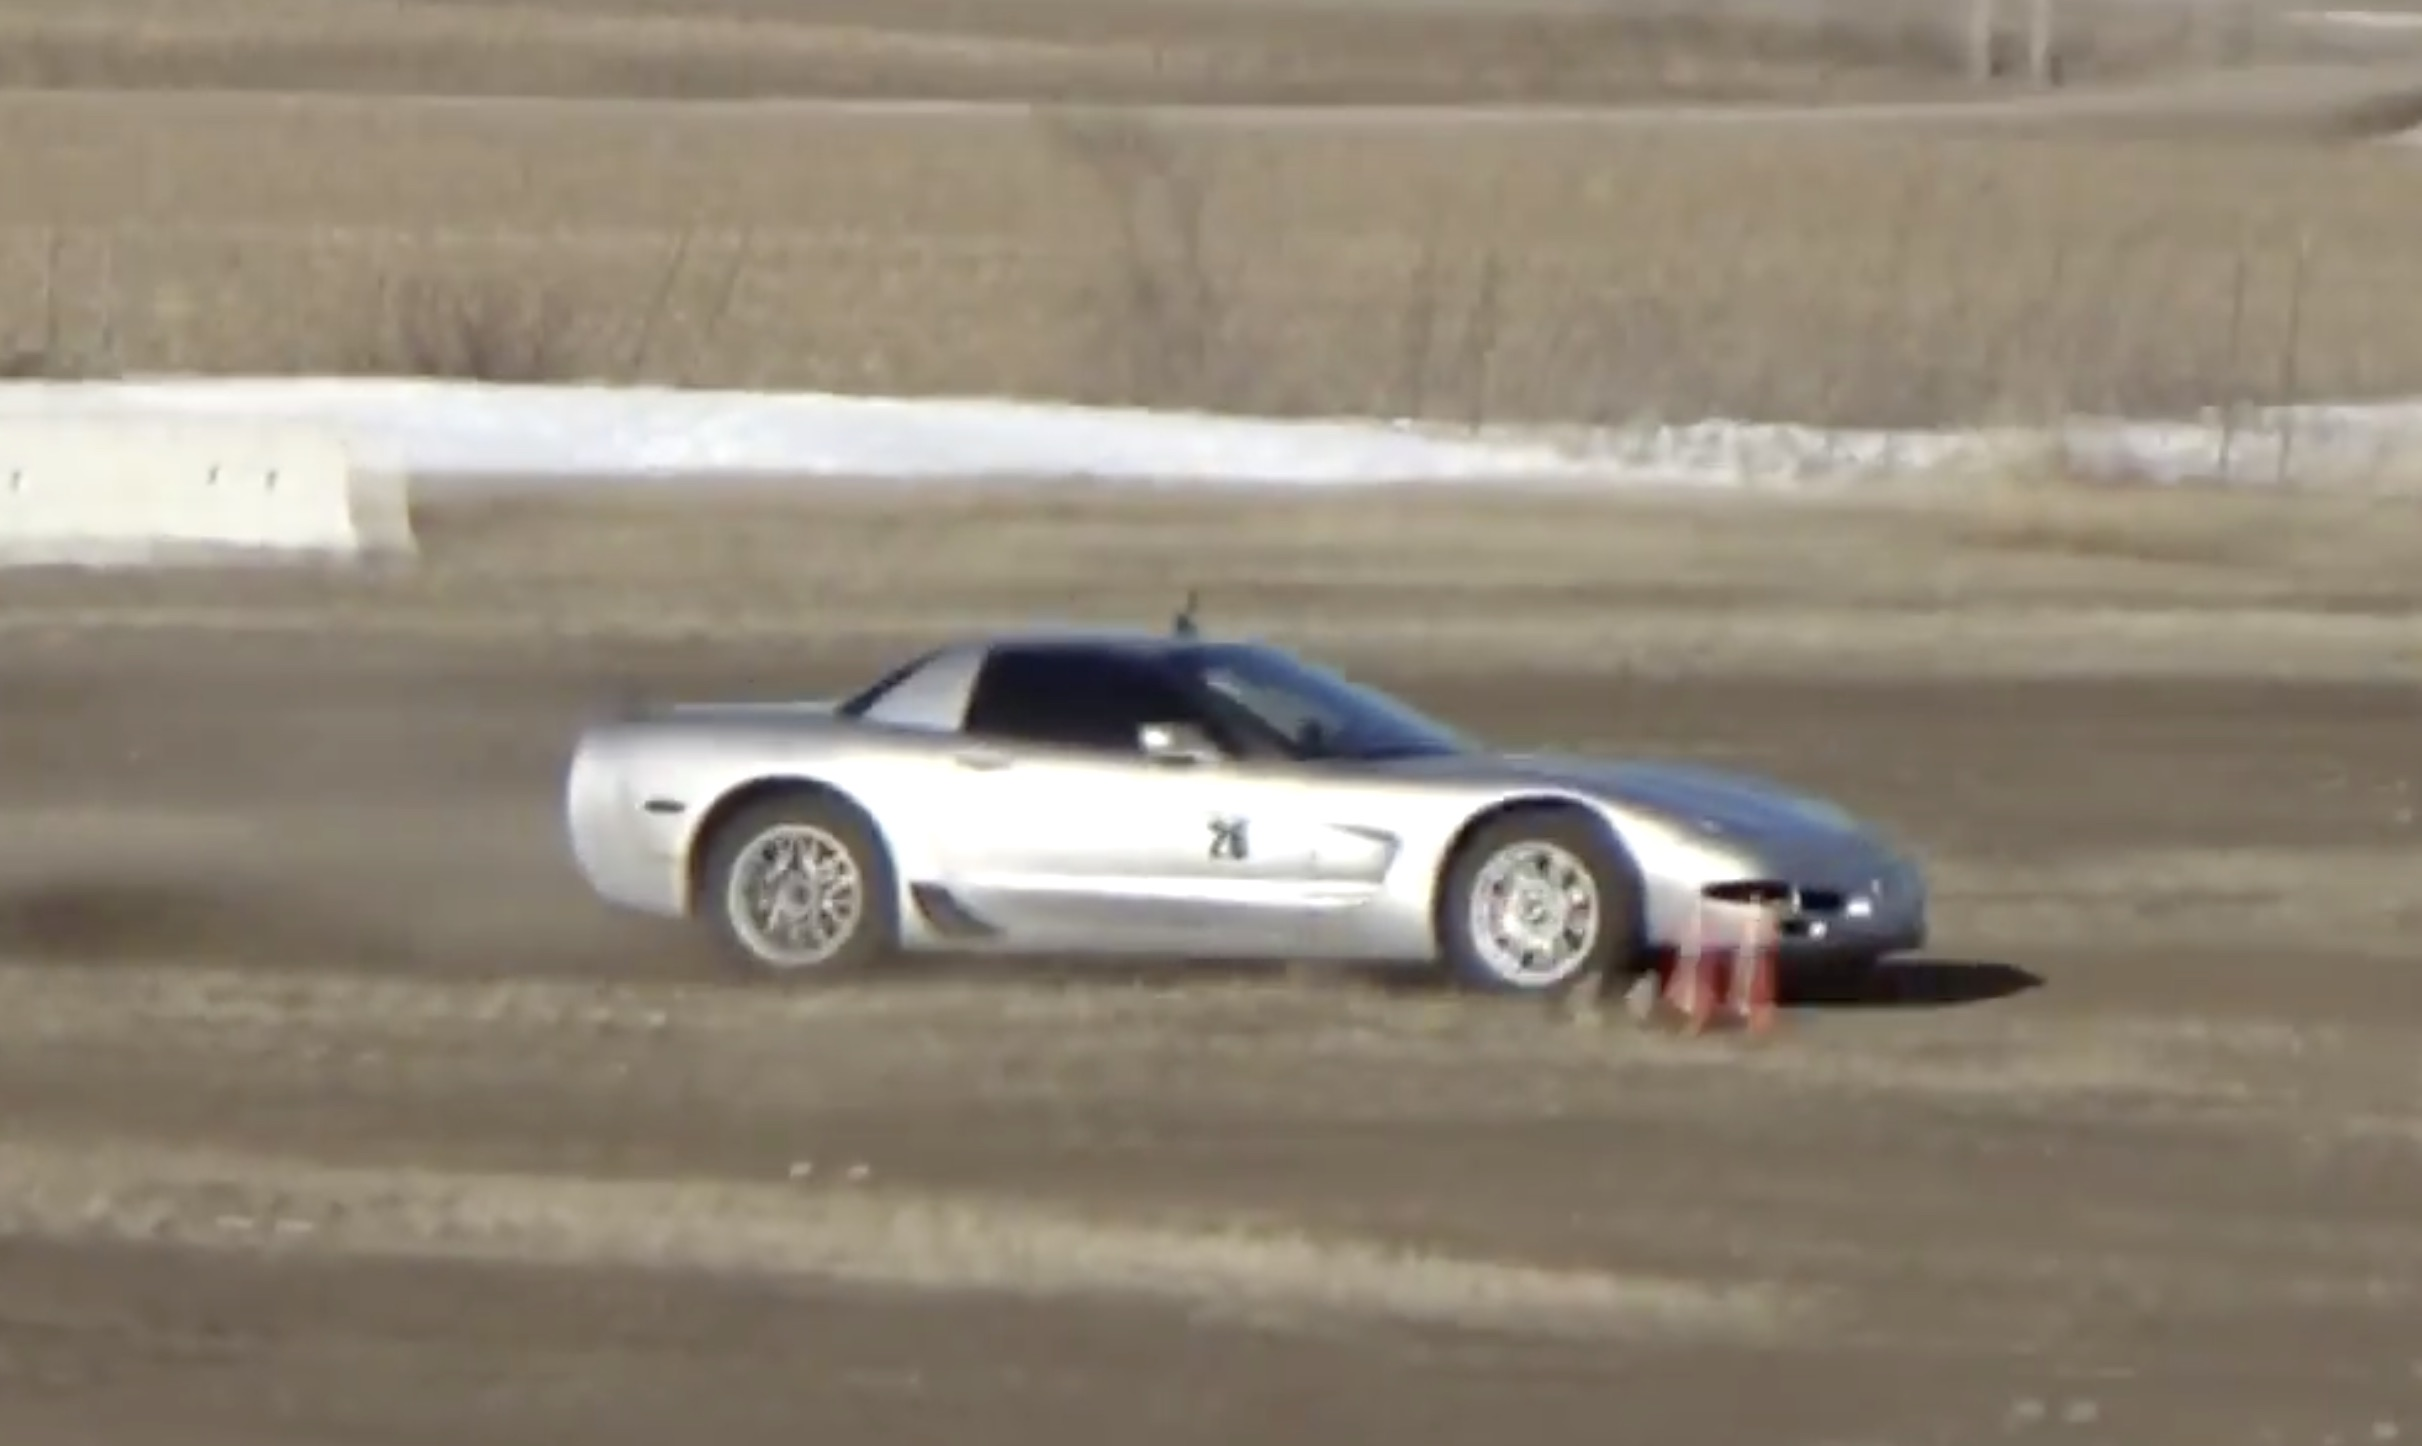 Rallycrossing A Corvette…Blasphemy Or Beautiful? Watch This C5 Z06 Rallycross On Some Frozen Dirt!